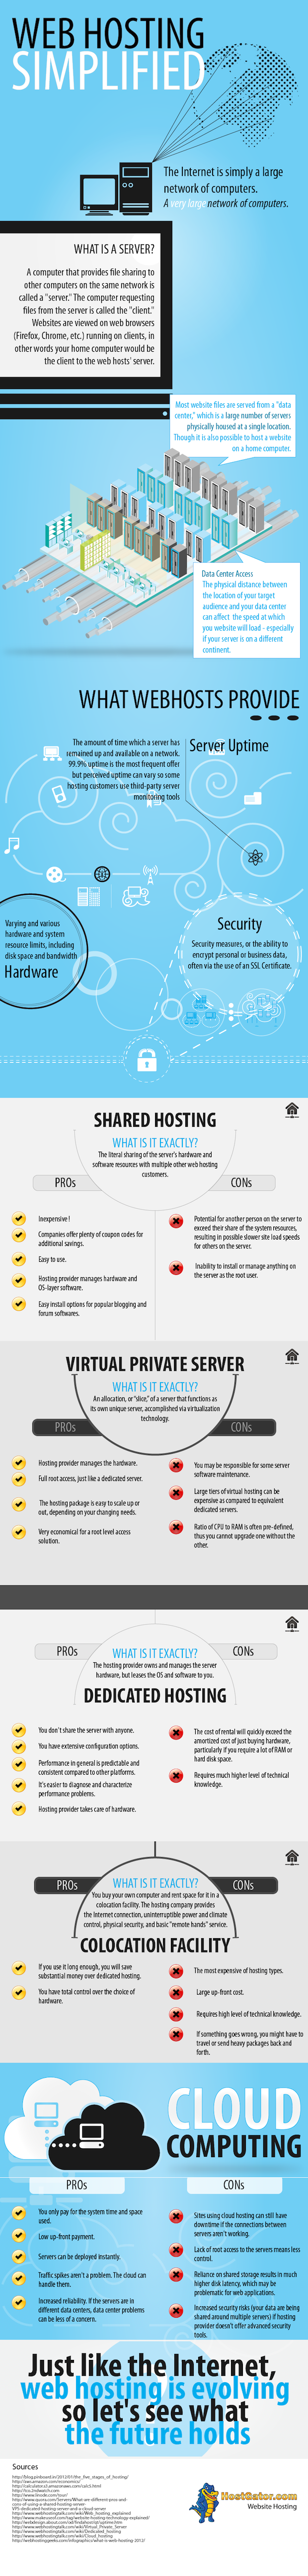 Web Hosting Simplified - An Infographic